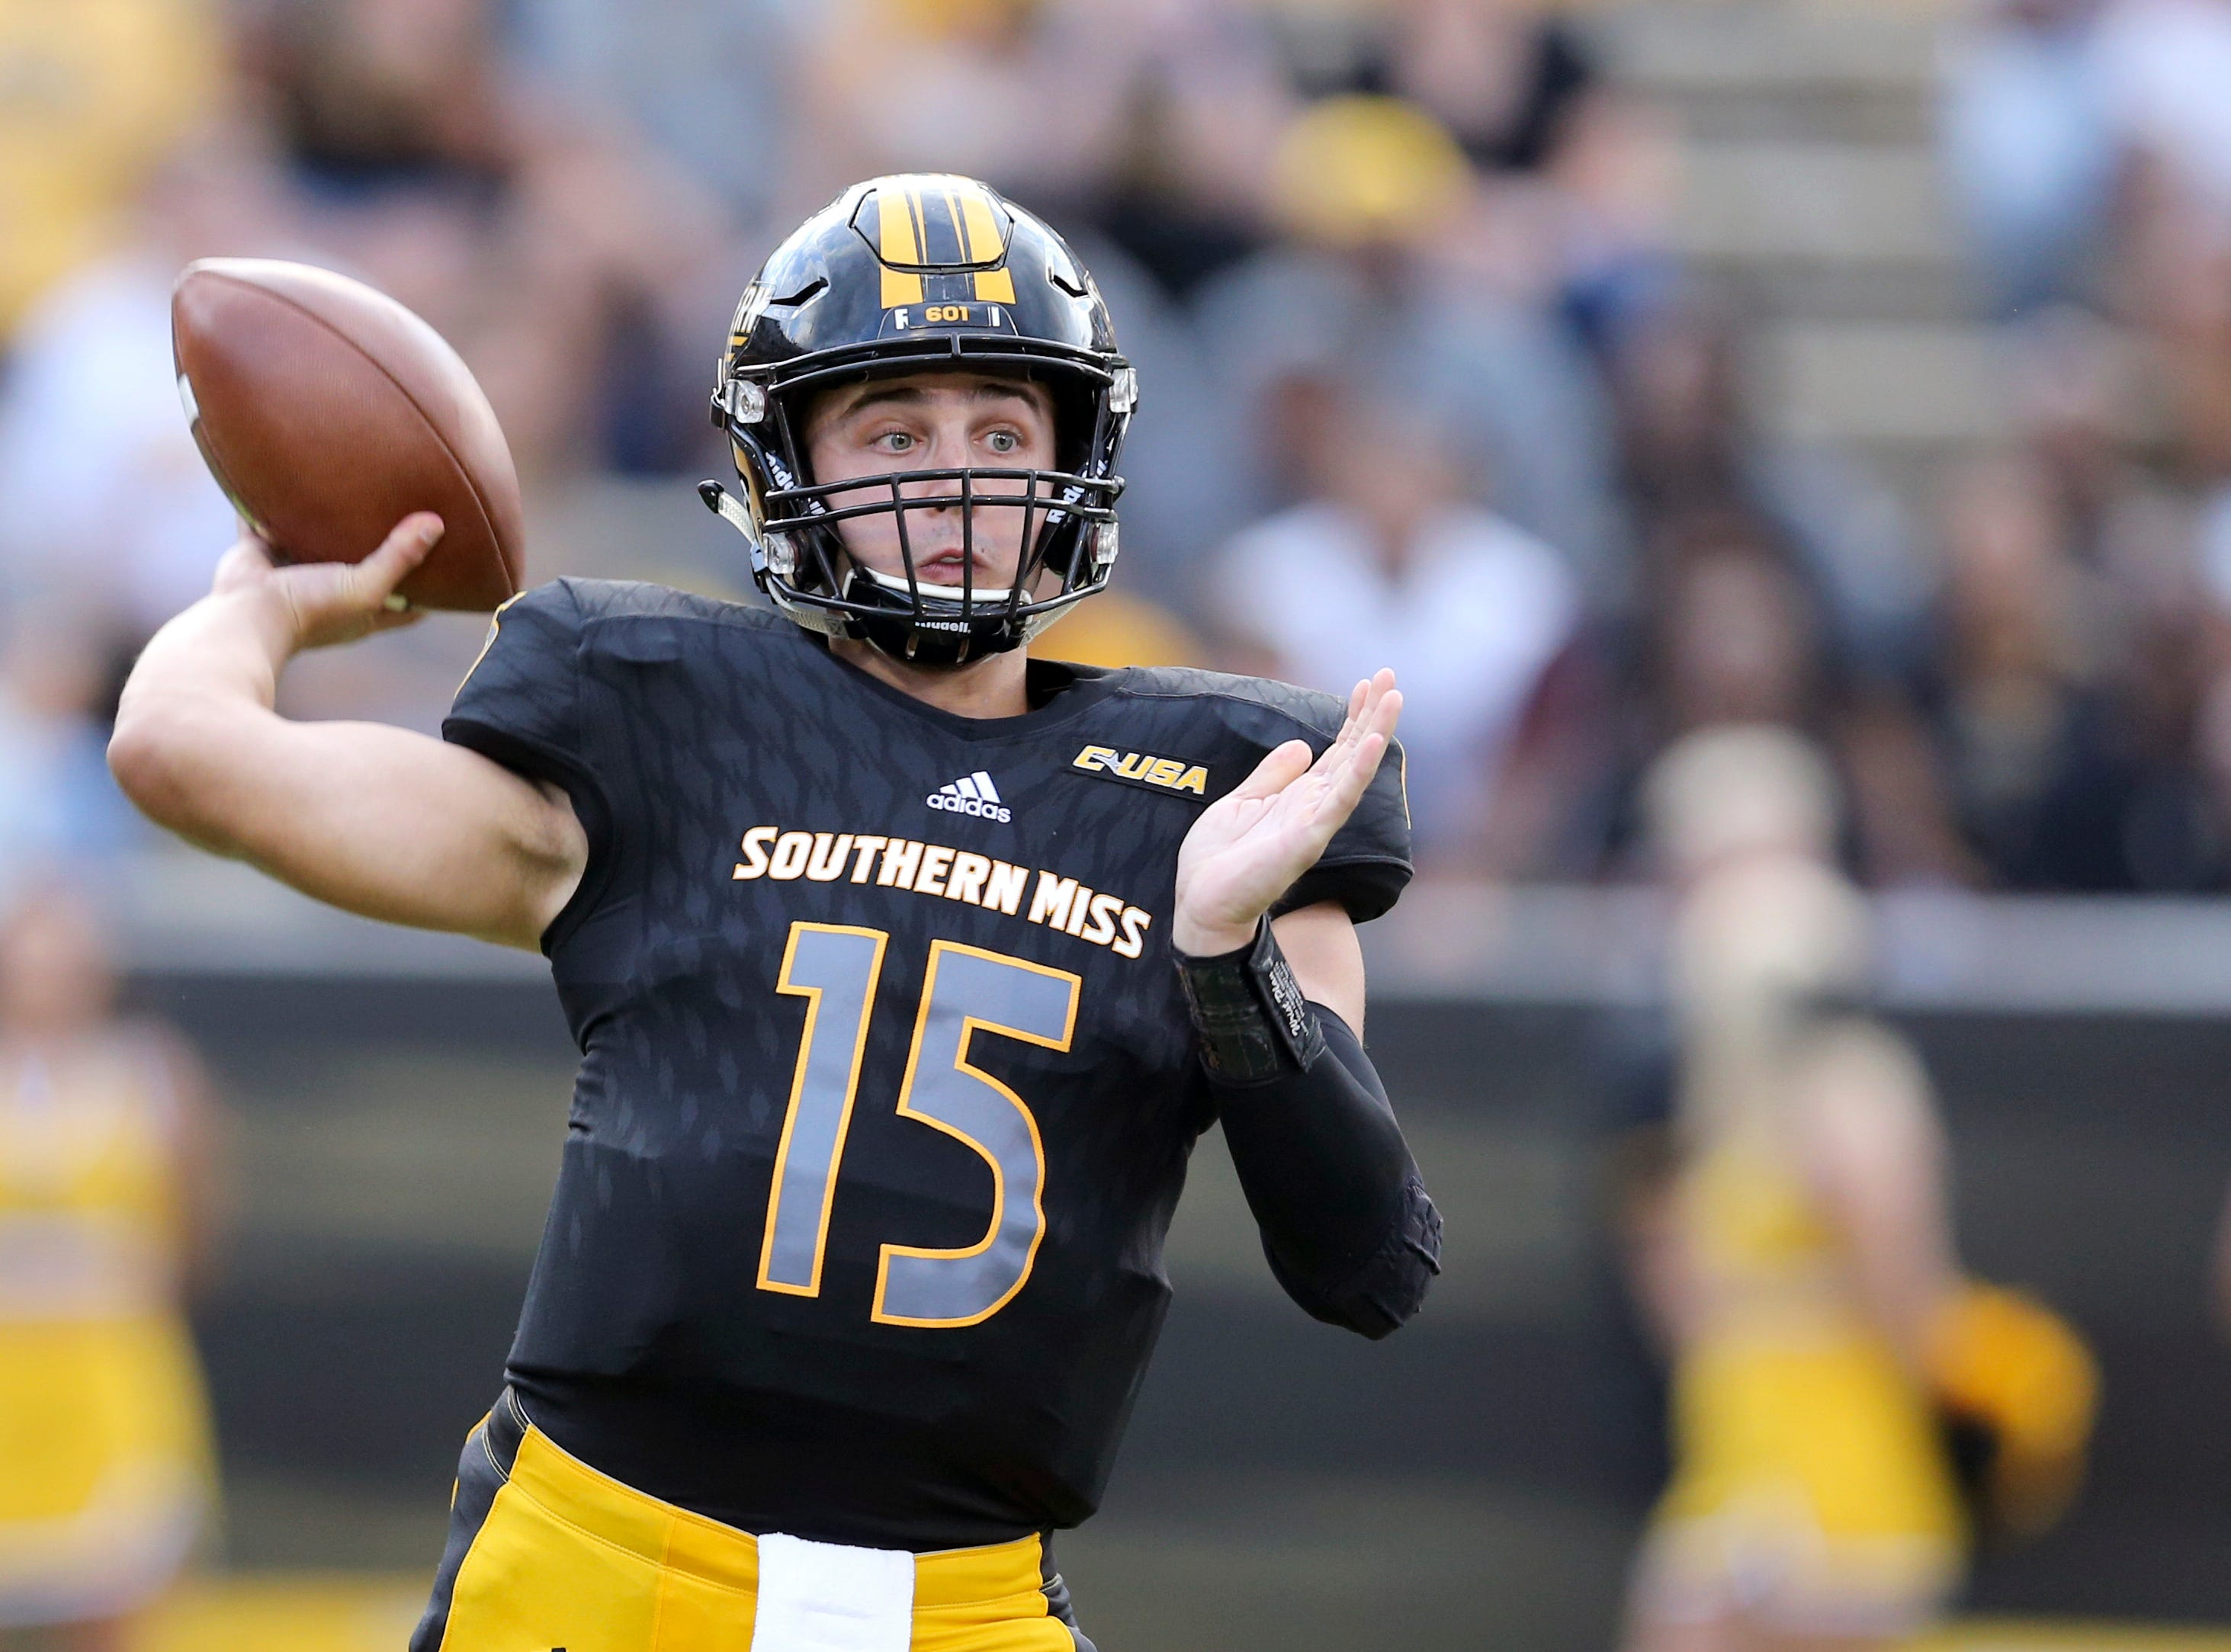 Southern Miss quarterback Jack Abraham (15) makes a throw against Rice on Sept. 22, 2018 in Hattiesburg, Miss.